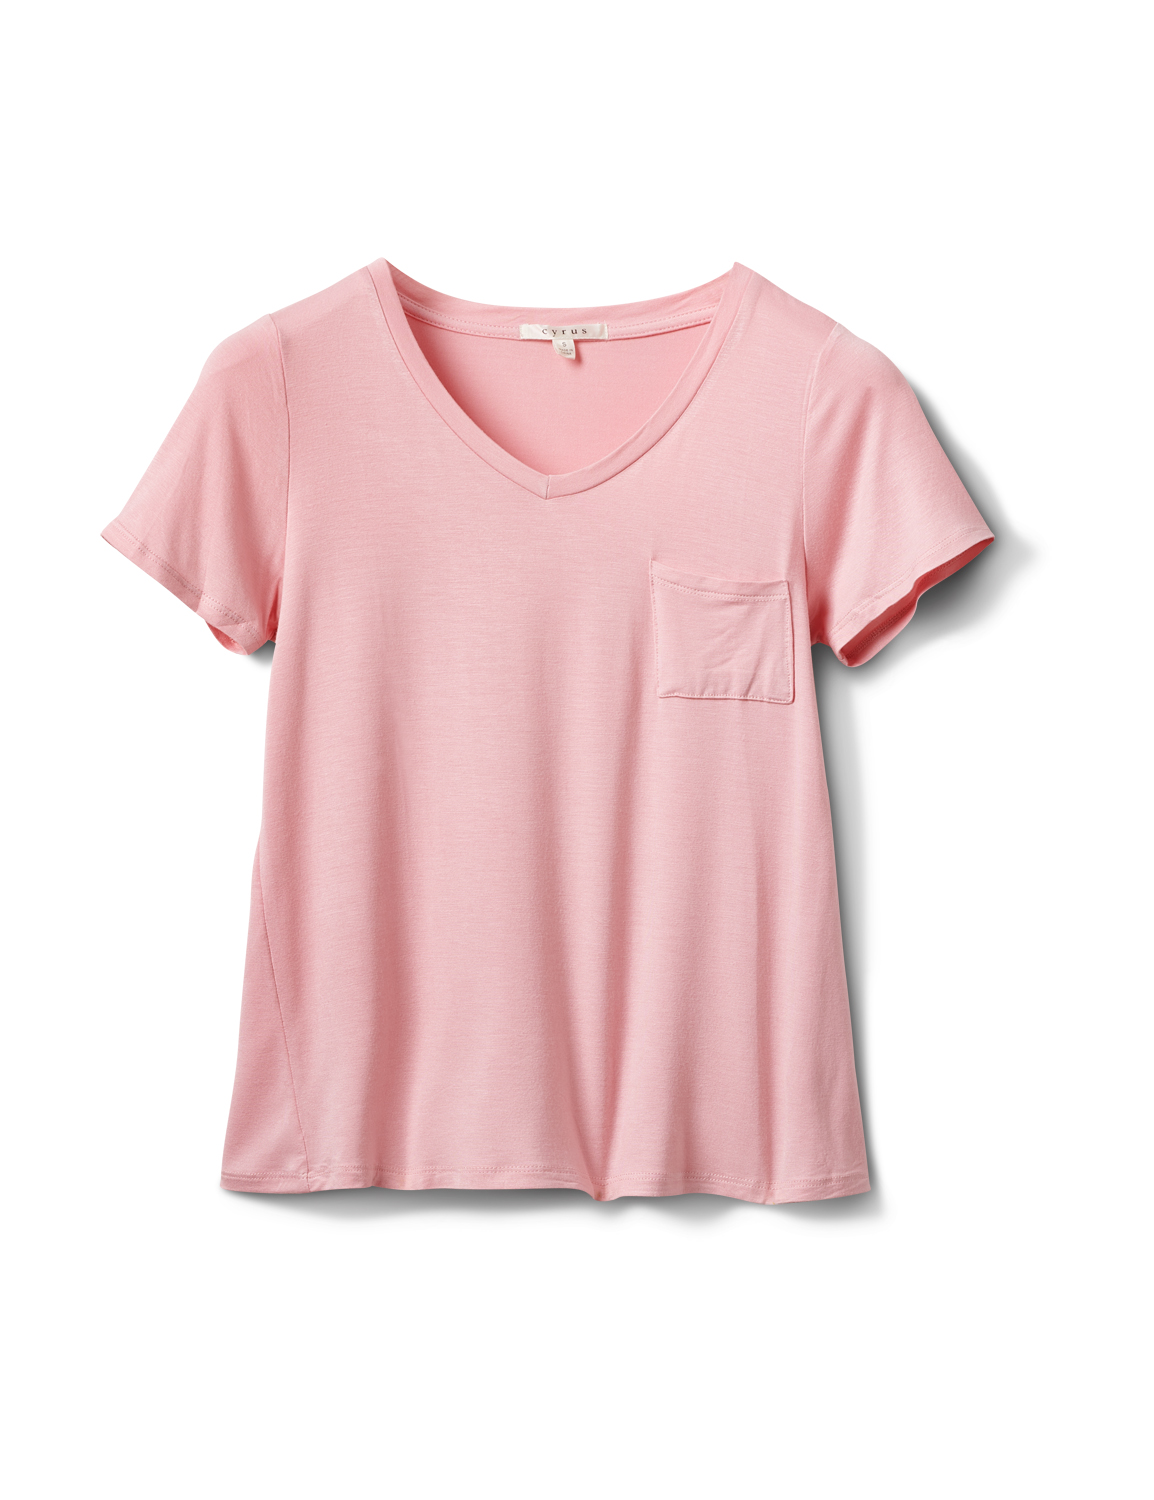 Rayon Span V-Neck Tee -Blush - Front